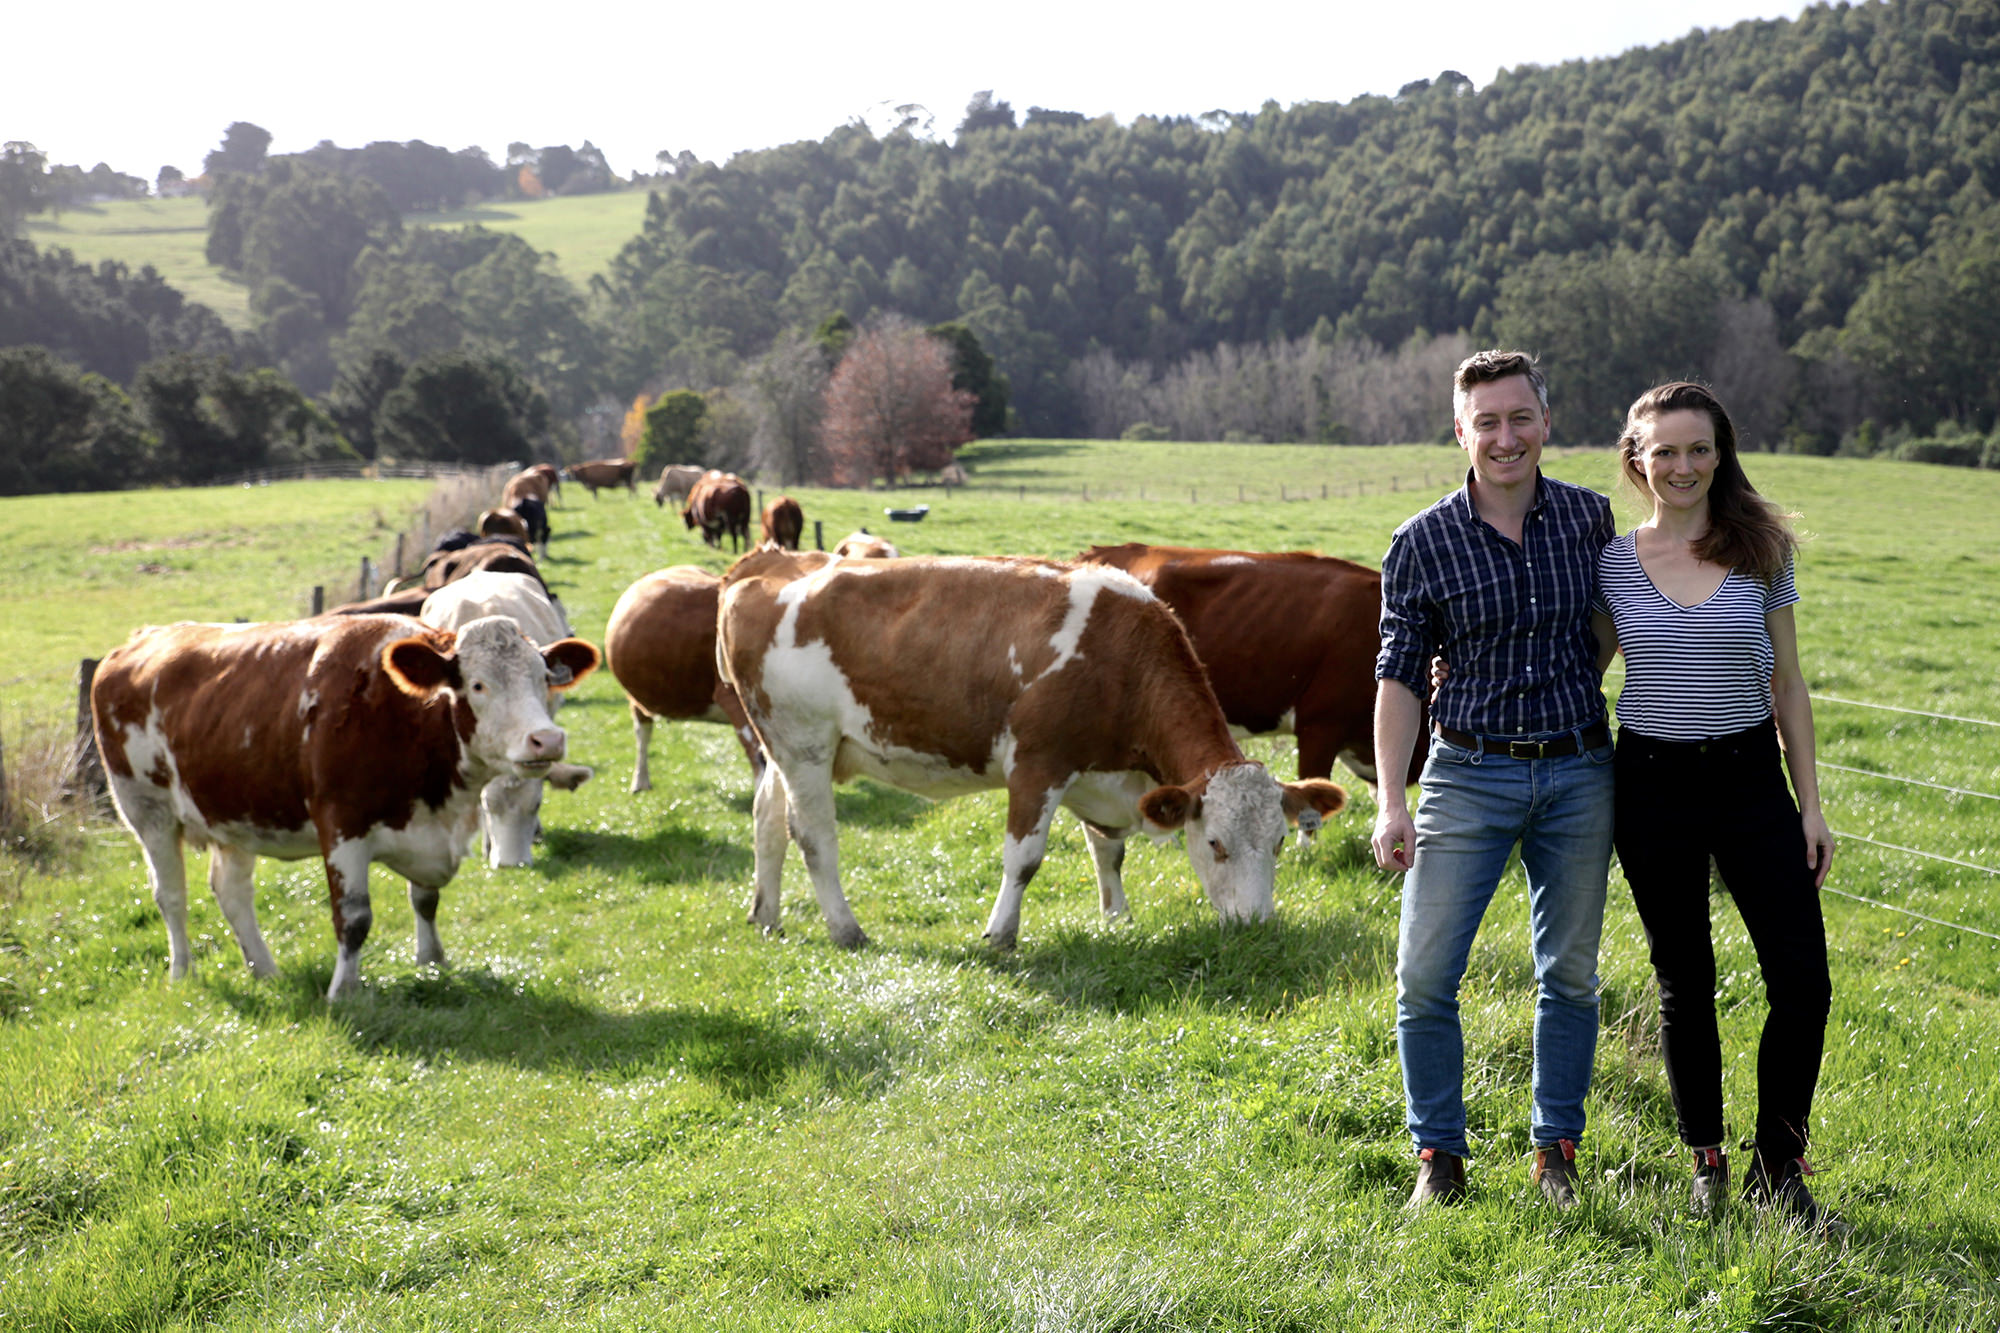 Josh and Jyoti with some of their retired cow herd in South Gippsland.